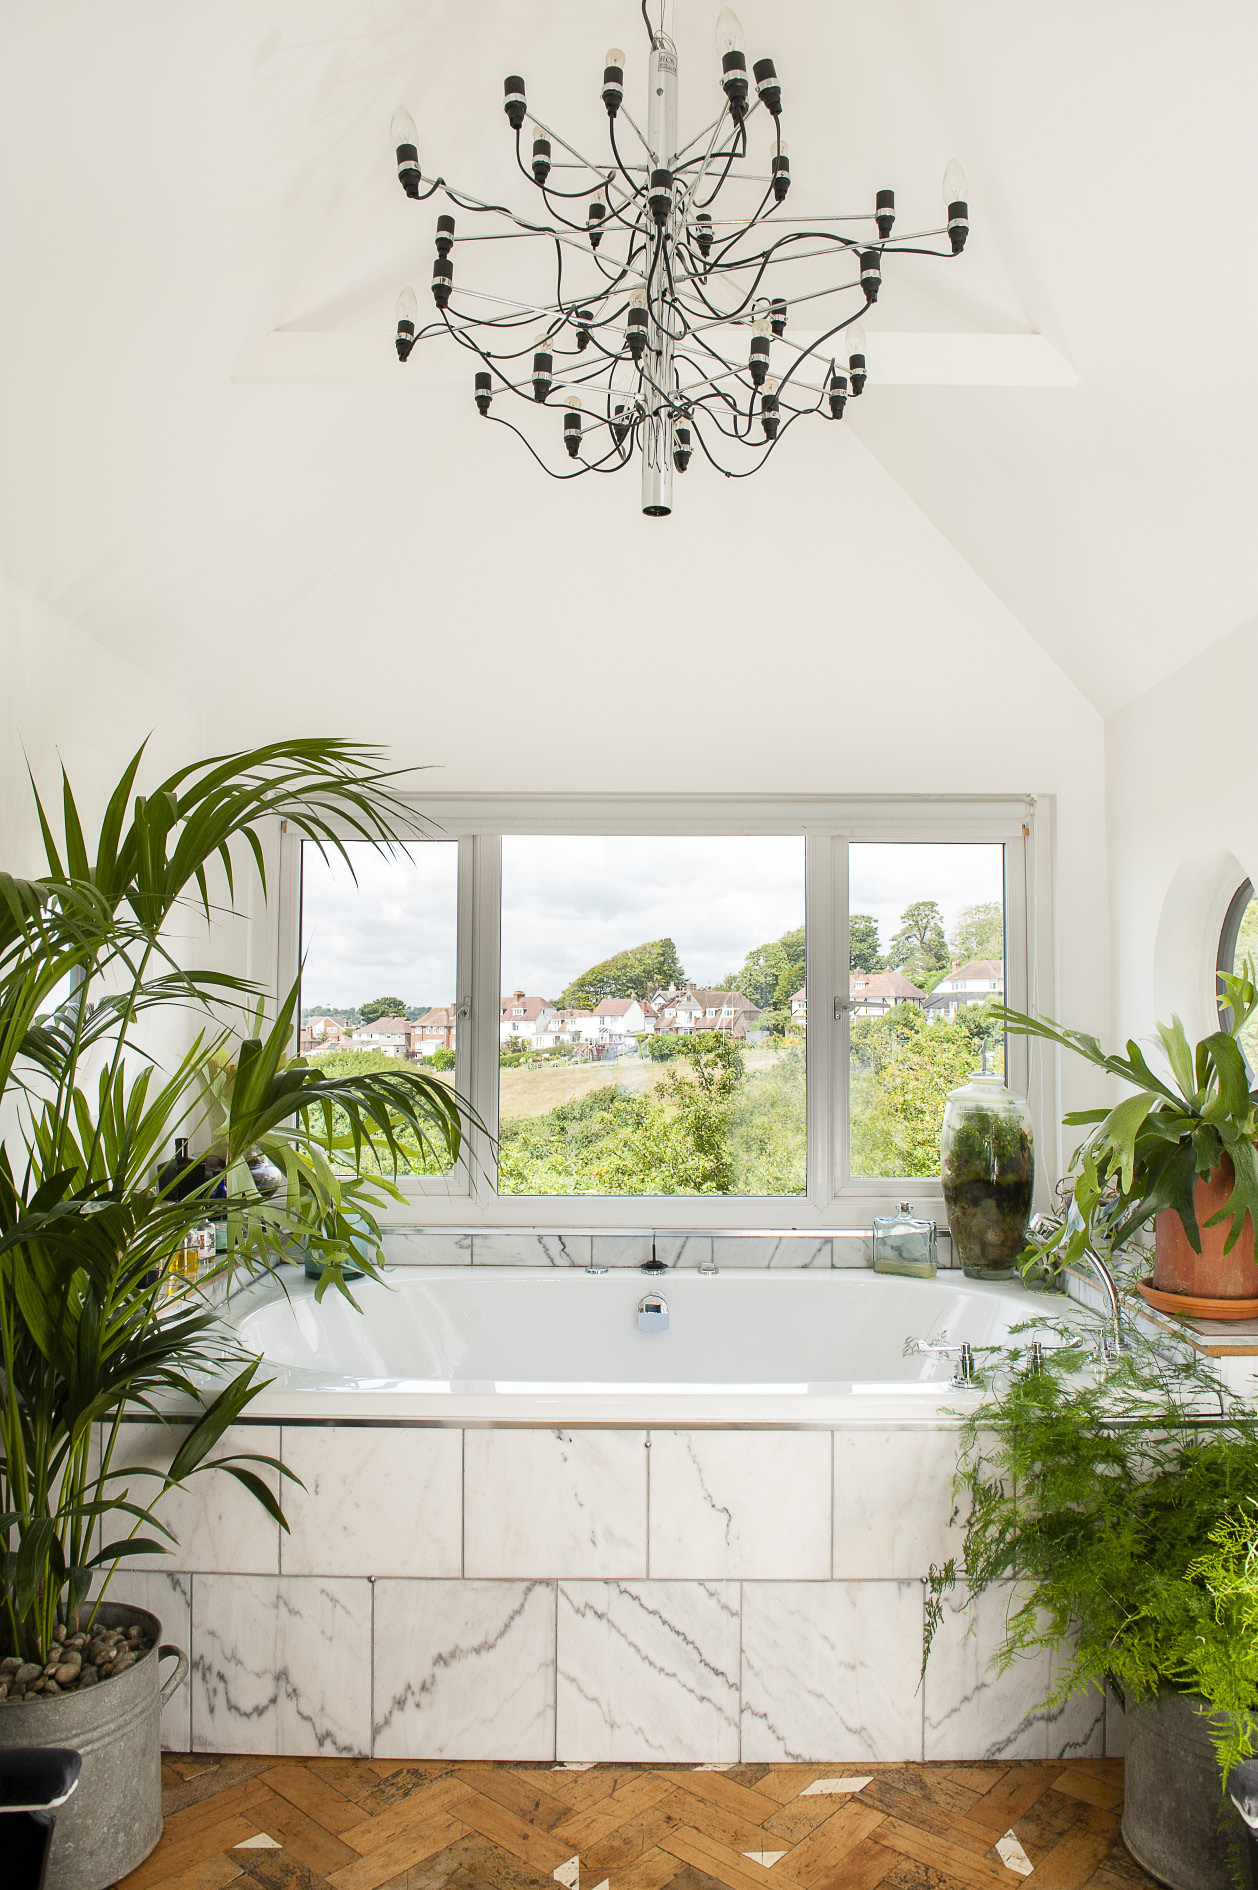 The plant-filled master bathroom has views over the Bourne valley. The chandelier is a 1958 design by Gino Sarfatti from Flos